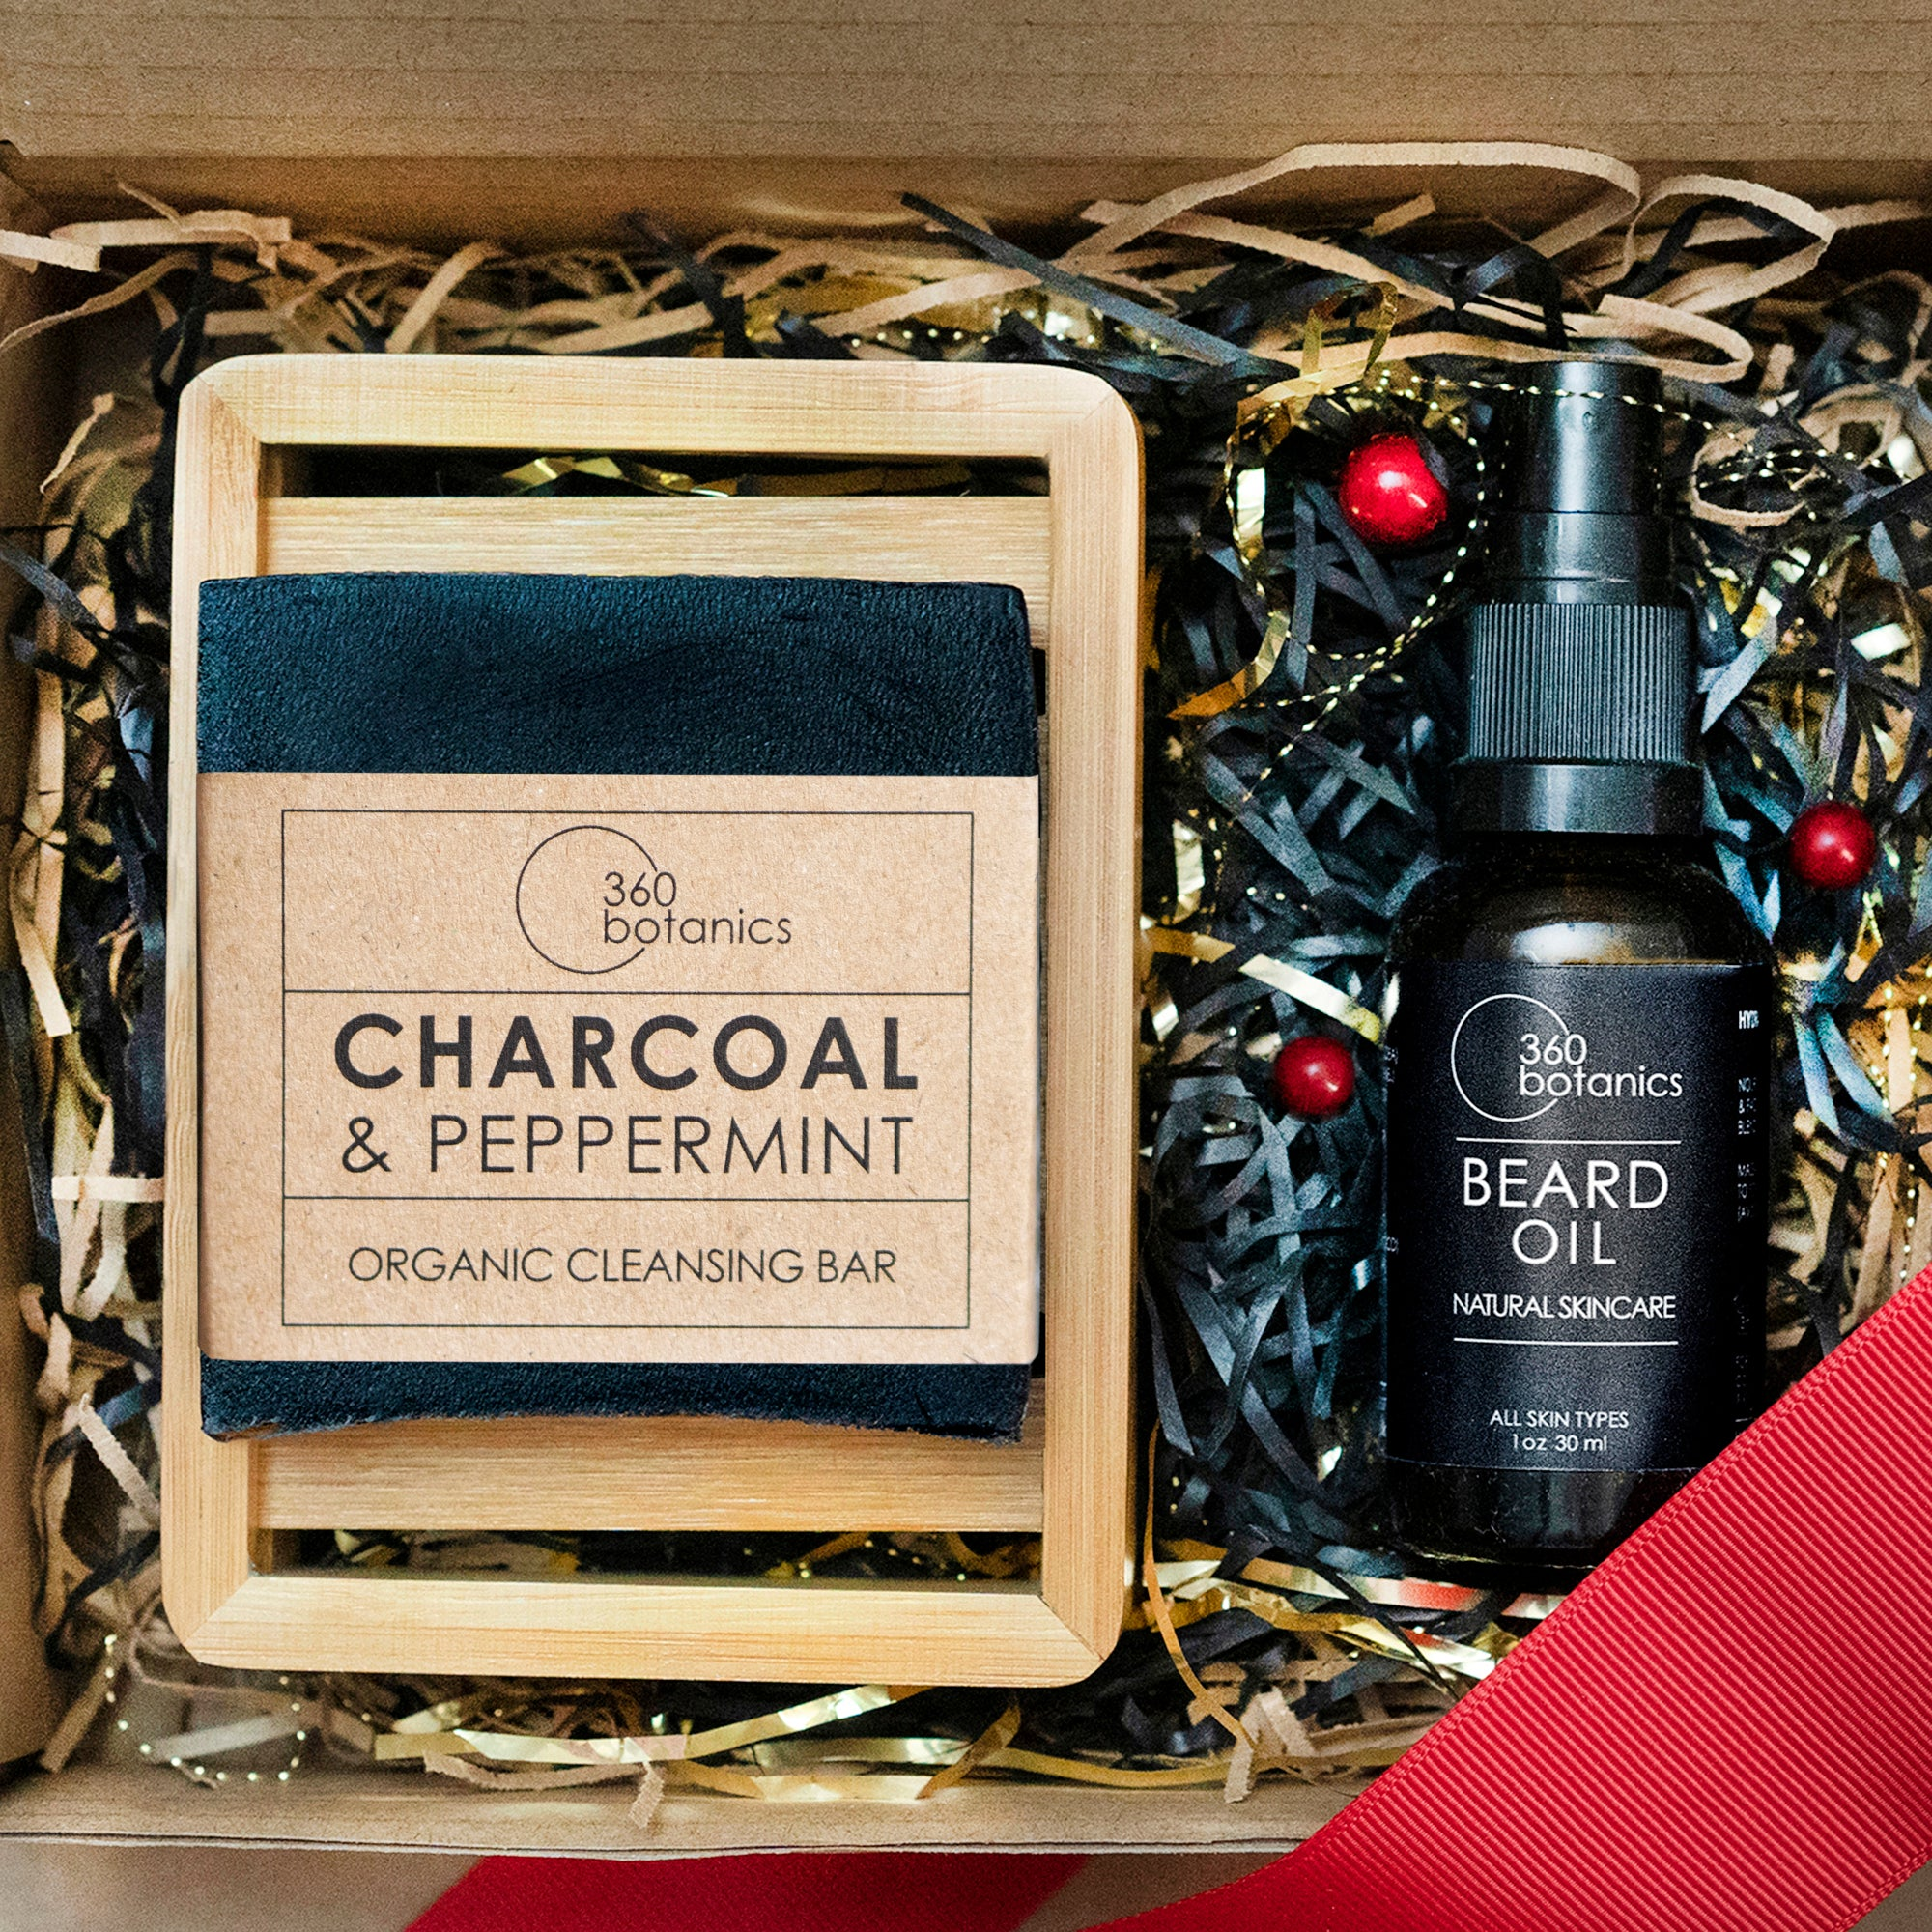 image of open gift box with beard oil and black soap